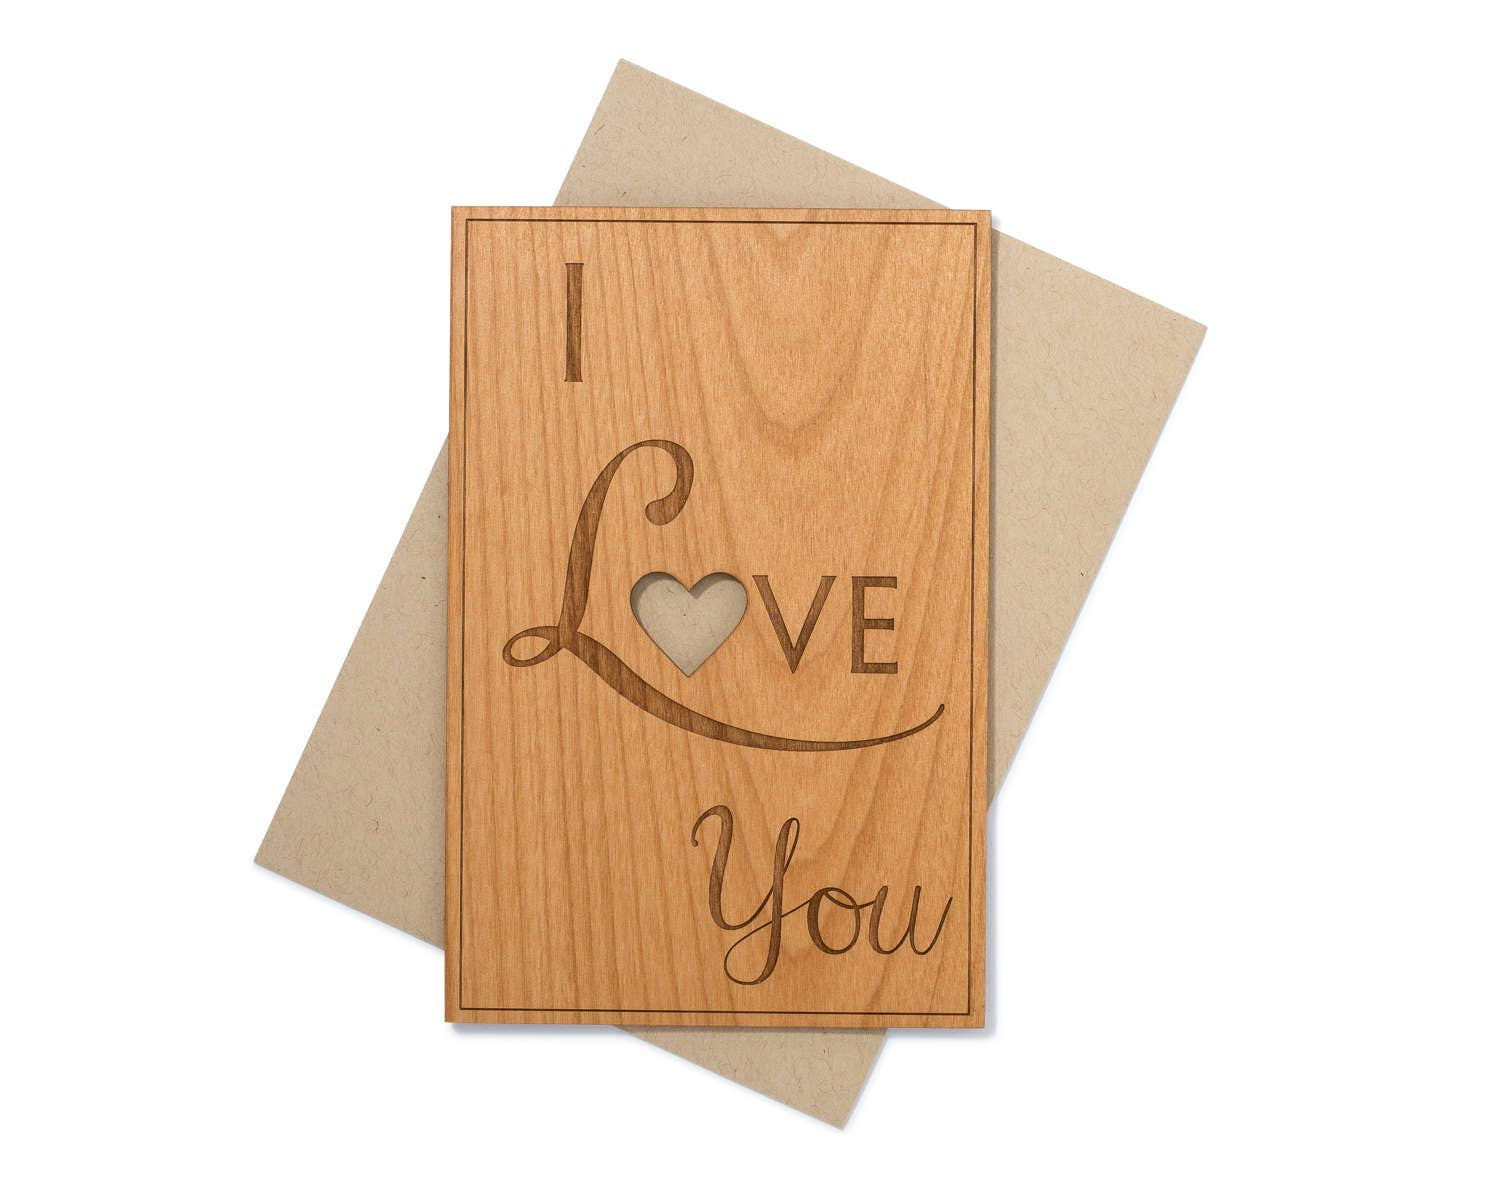 5th Wedding Anniversary Gift Ideas For Him: Romantic 5th Anniversary Gifts. I Love You Card Wood. Laser